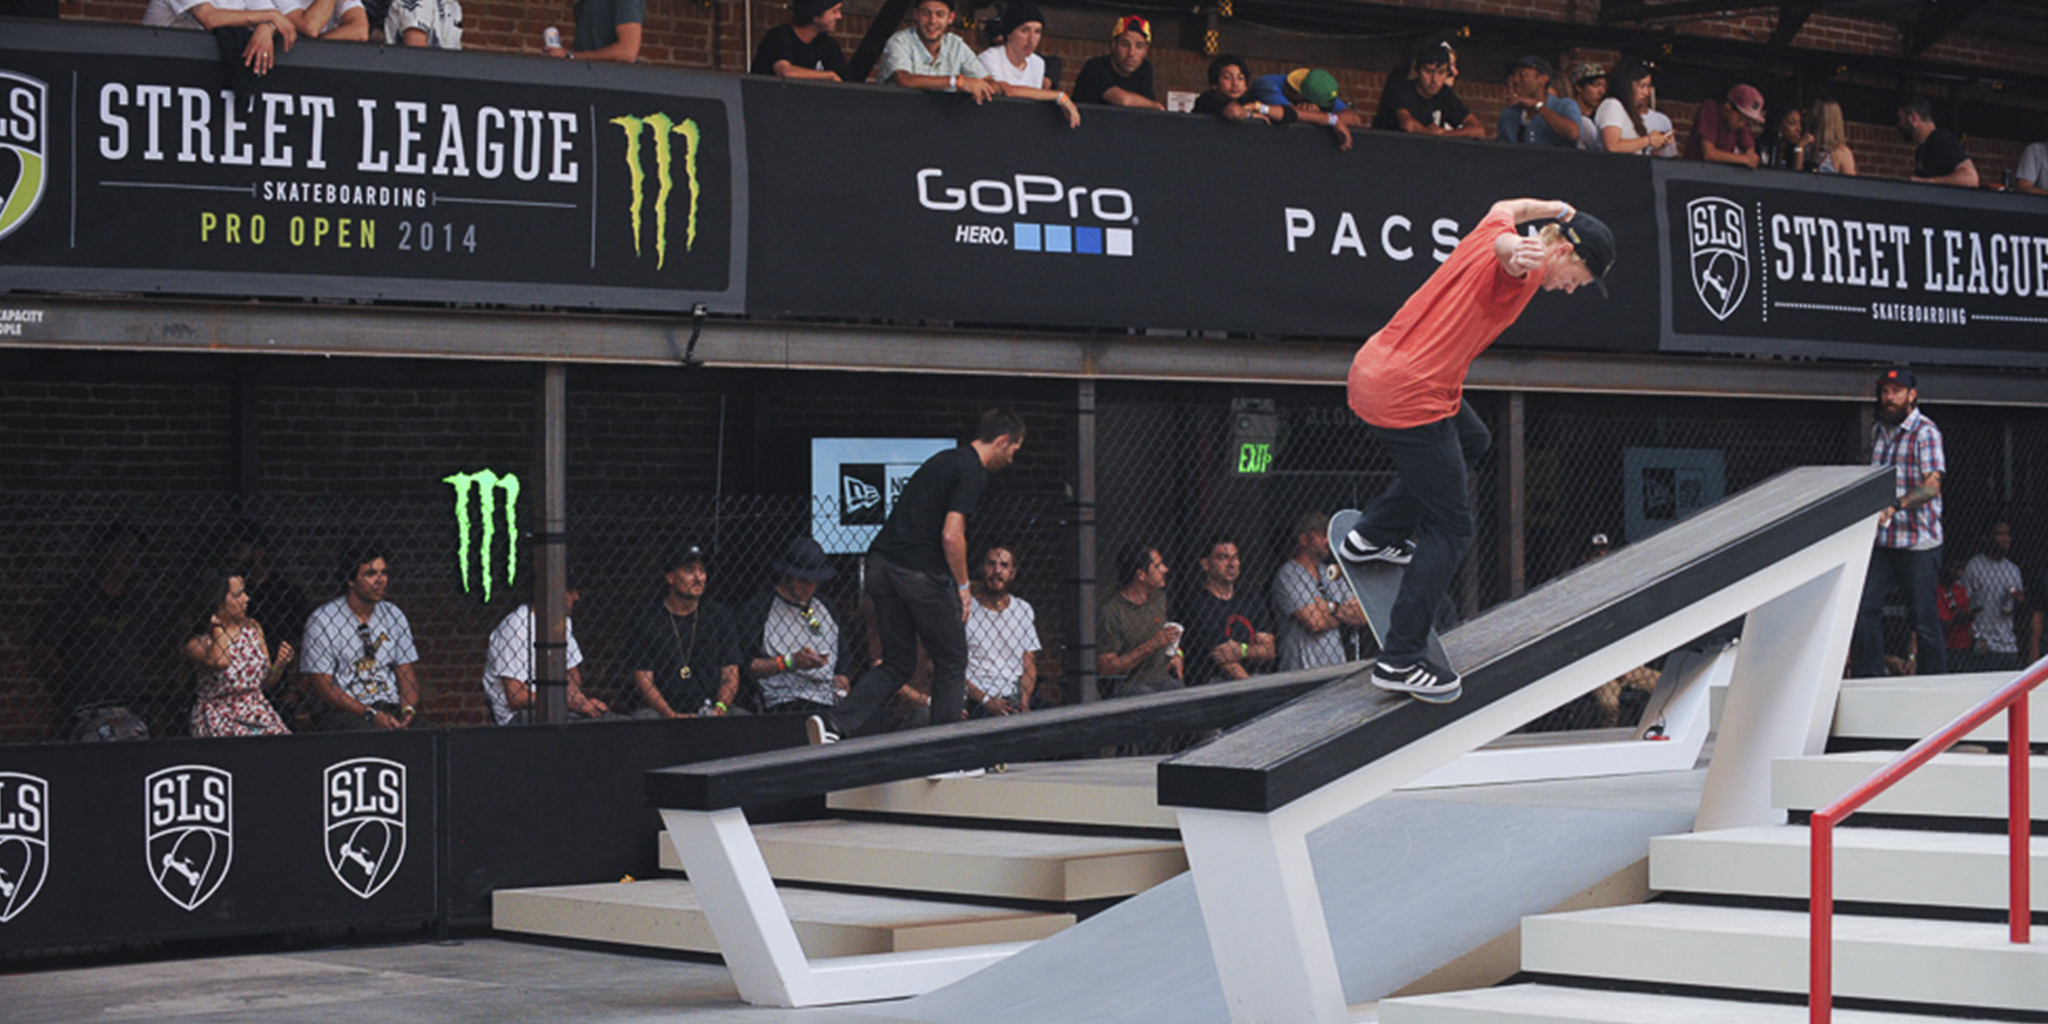 Nike SLS Pro Open 2015 will be held in Skate Agora BDN